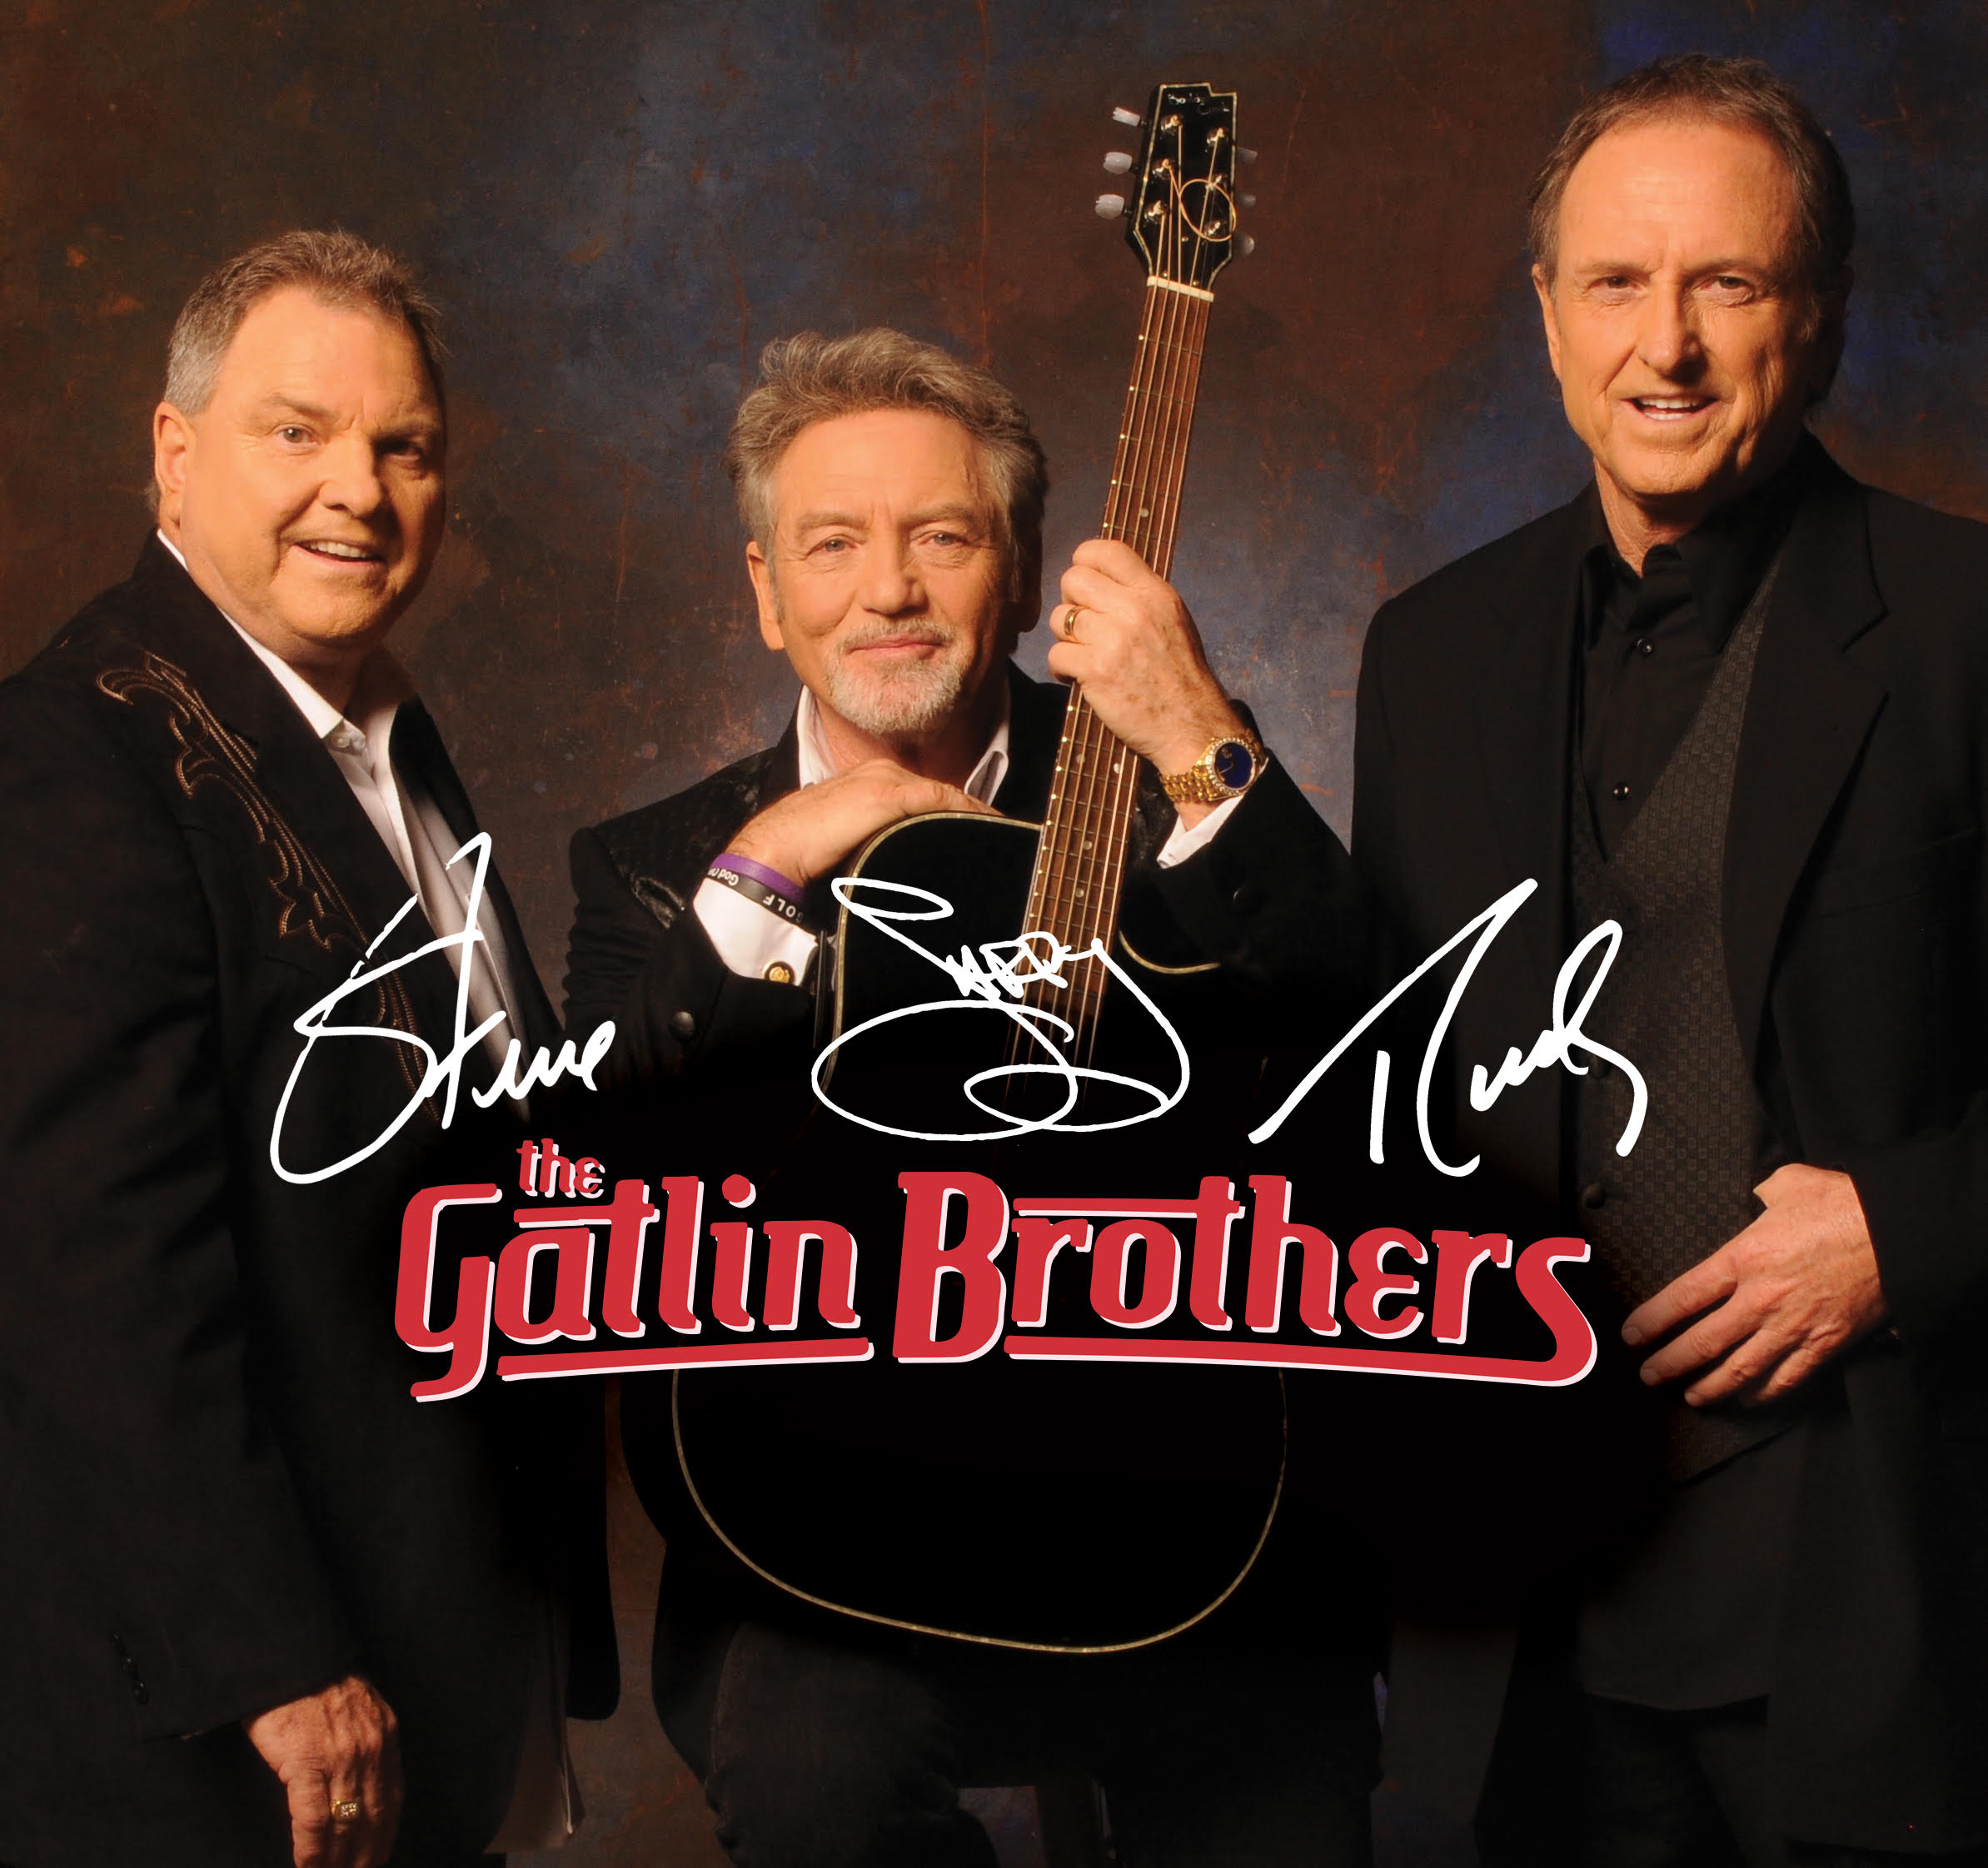 Image for AN EVENING WITH THE GATLIN BROTHERS